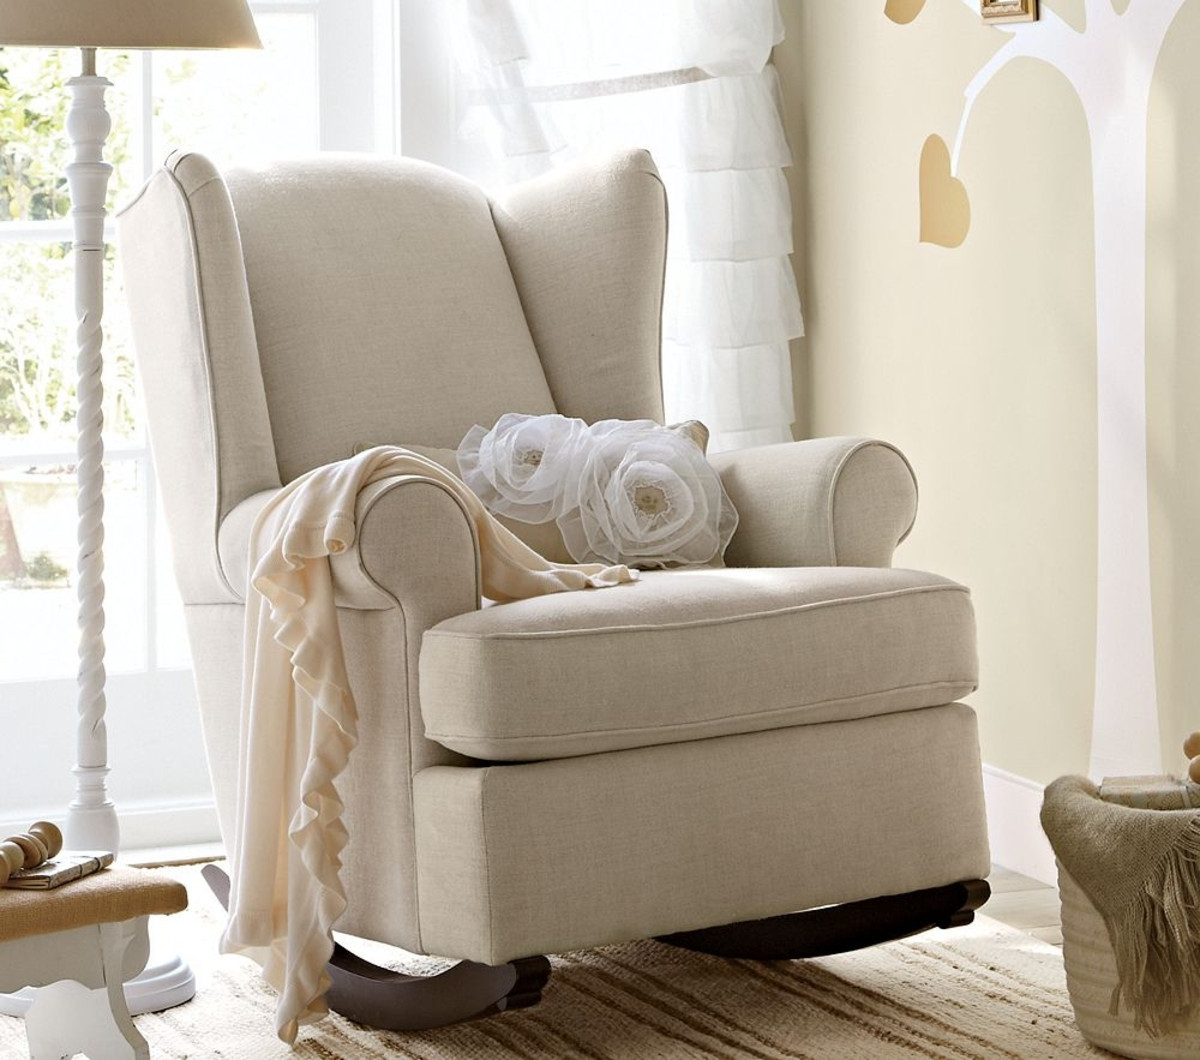 Rocking Chairs For Baby Room With Favorite Furniture Nursery Rocking Chair With Ottoman Chairs For Baby Room (View 18 of 20)